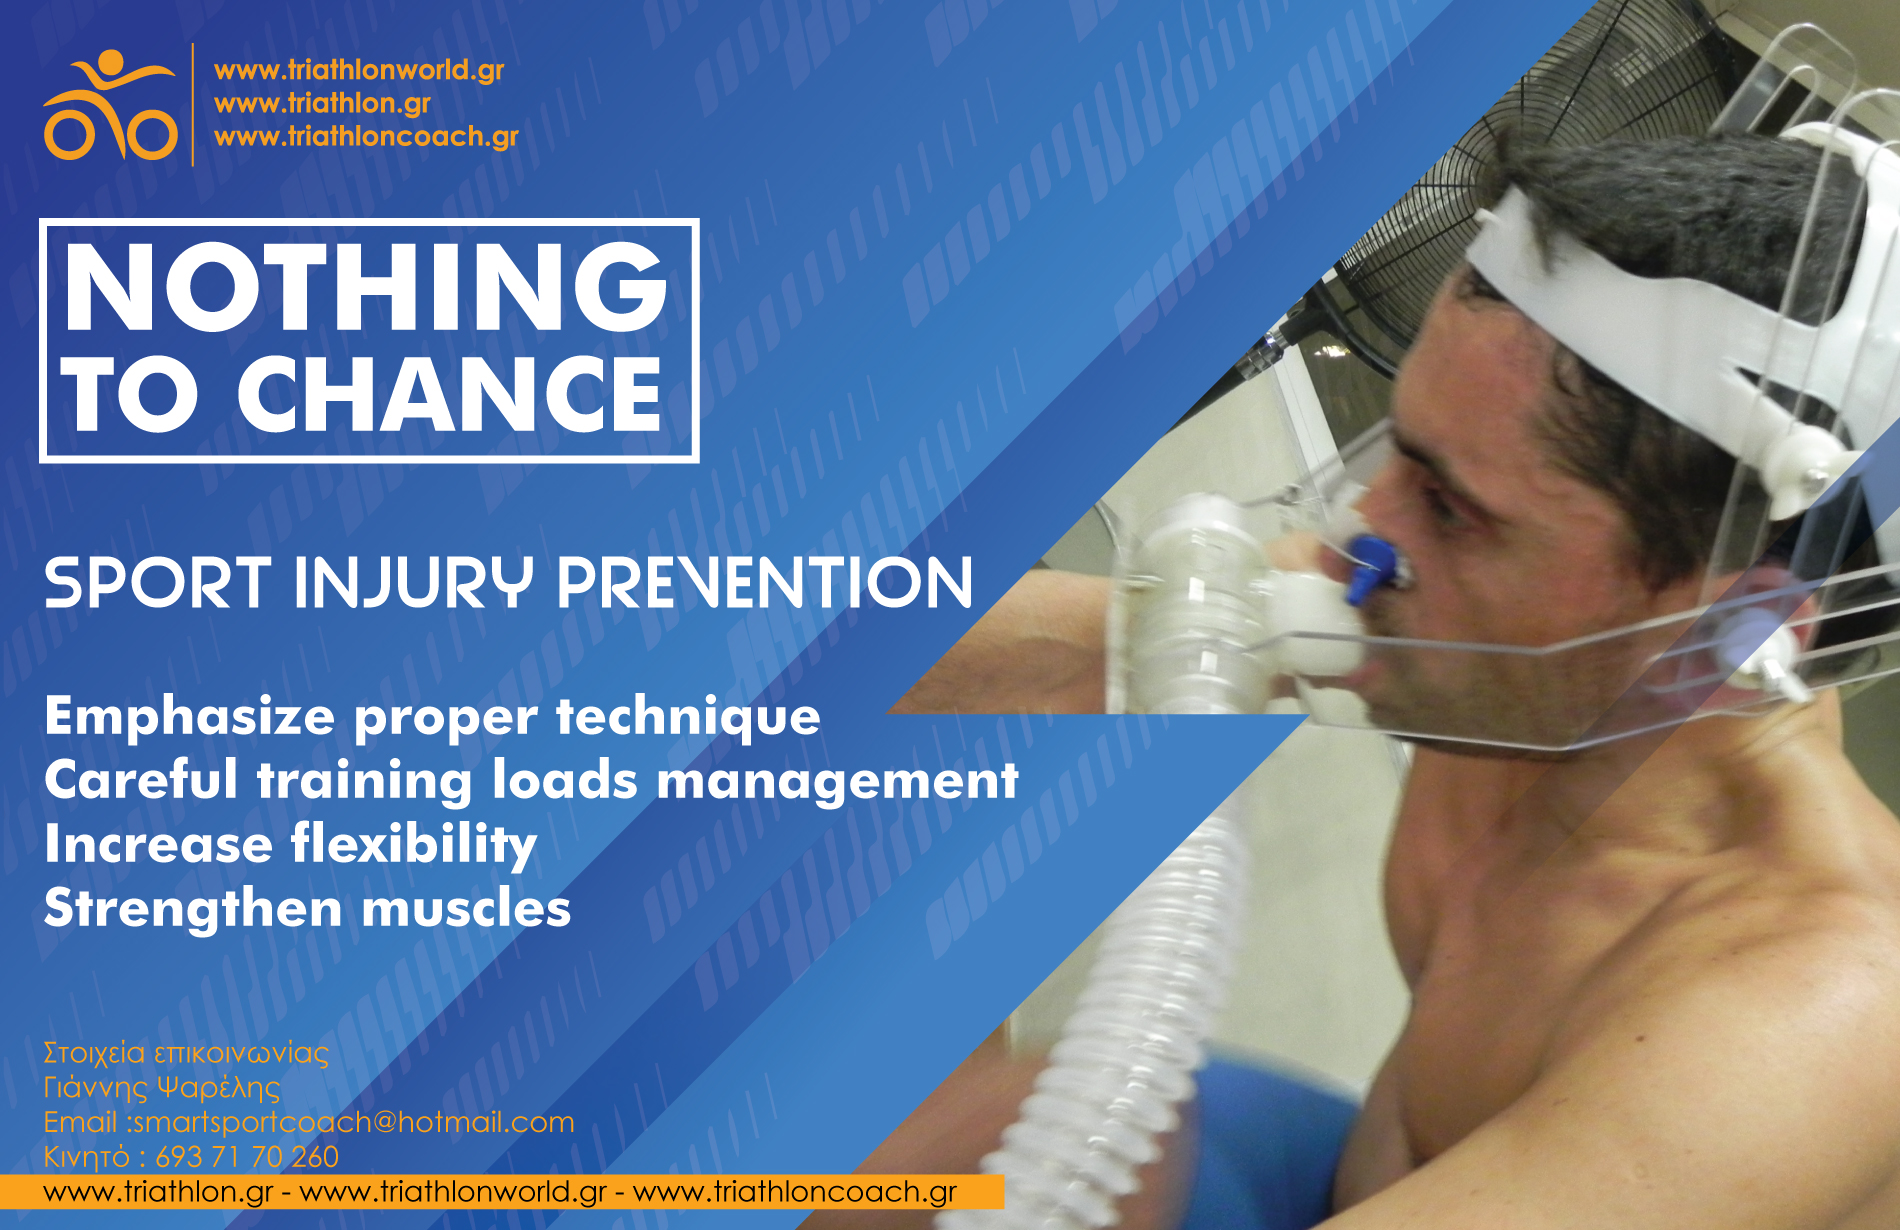 Triathlon Injuries prevention